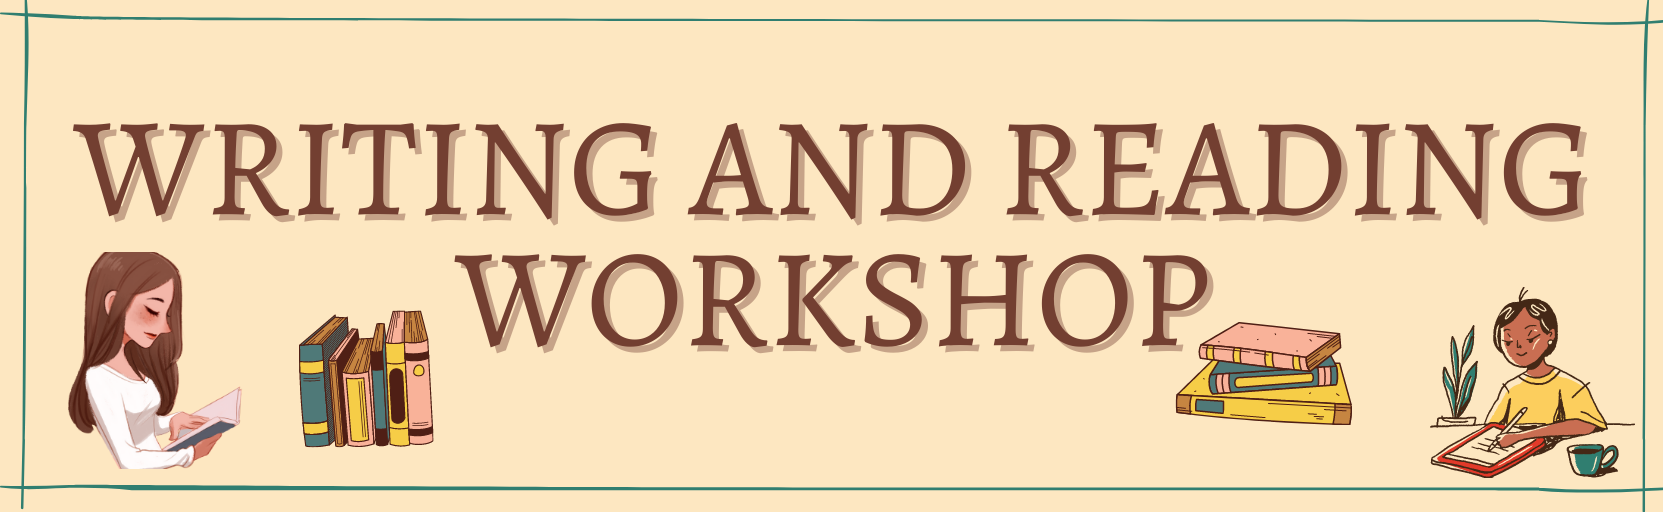 WRITING AND READING WORKSHOP